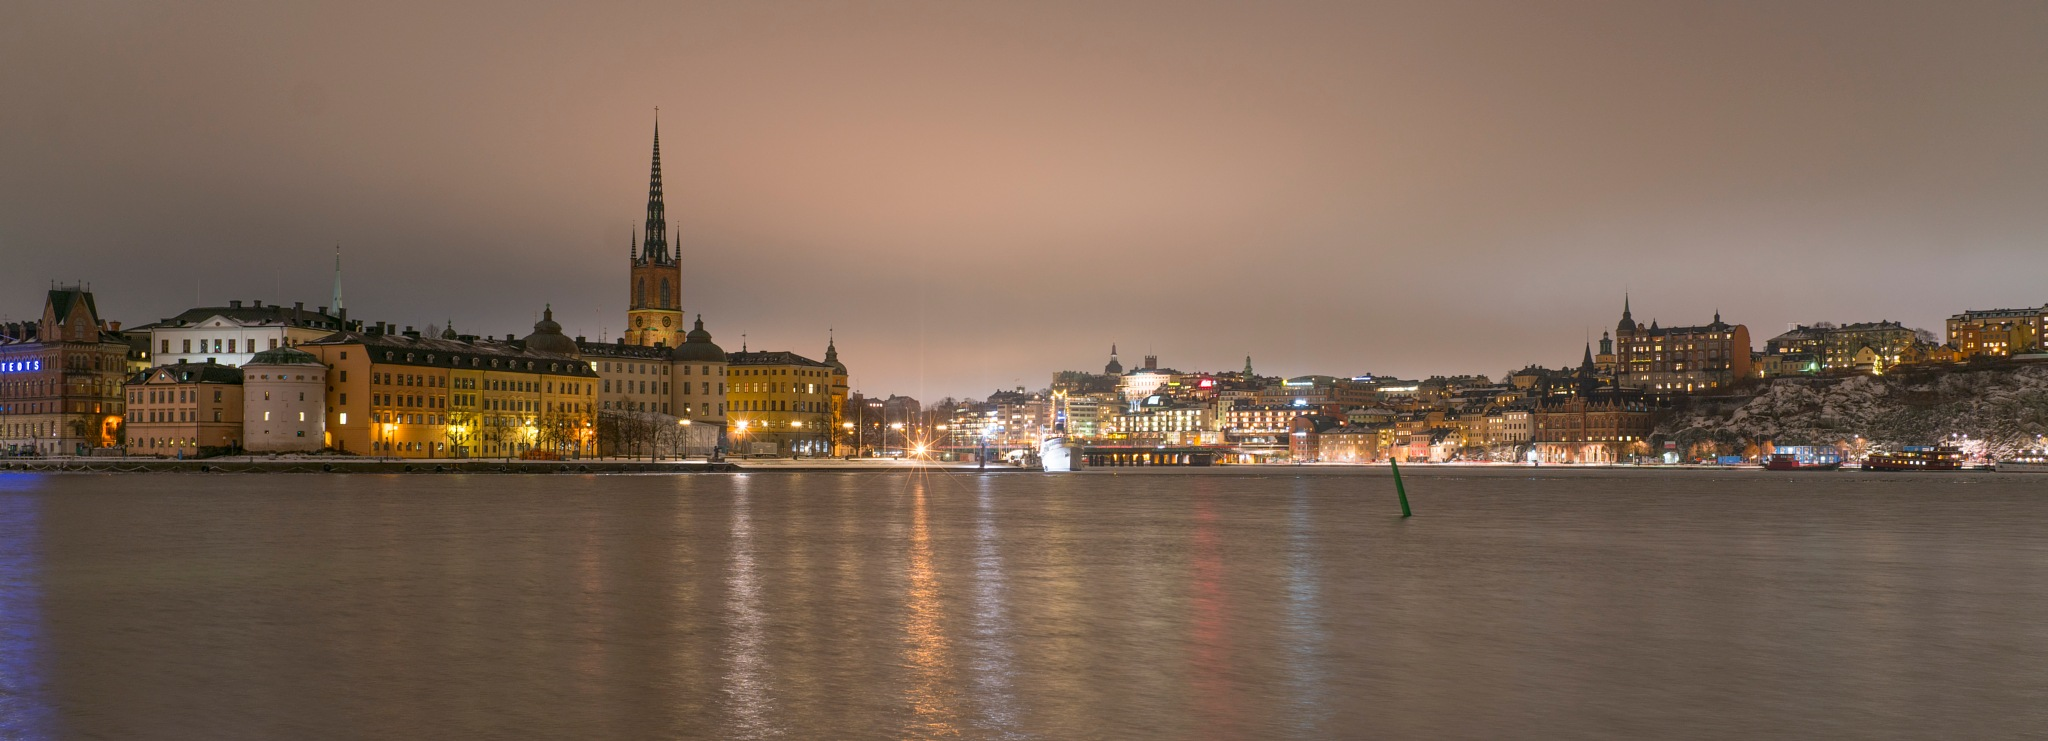 Stockholm by Night by rickyban_Photography